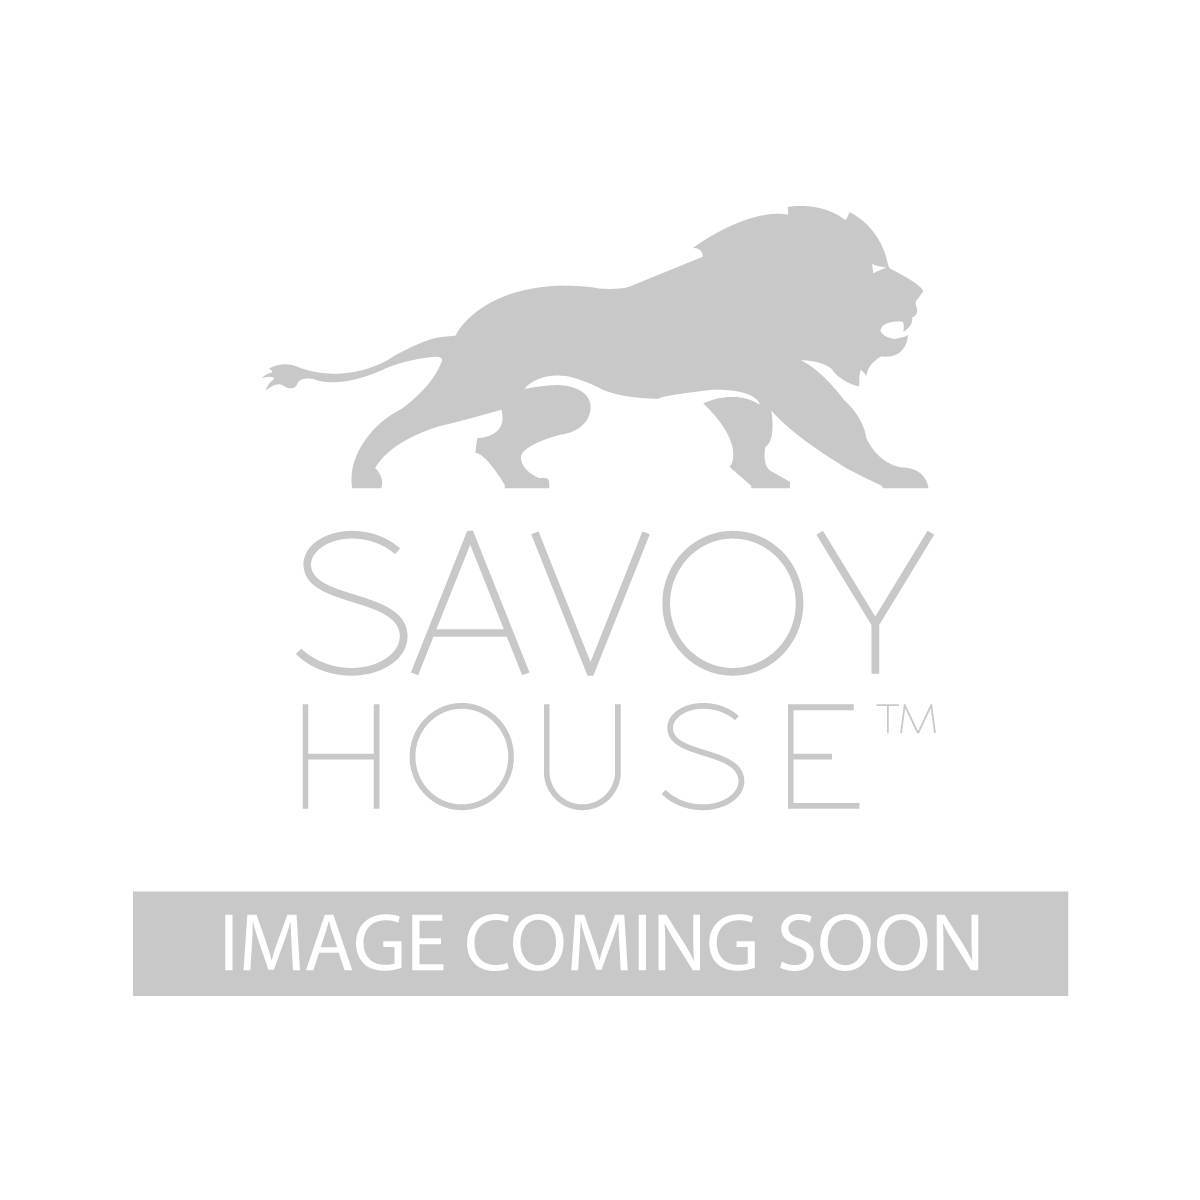 9 6074 1 90 Dansk 1 Light Damp Rated Sconce by Savoy House